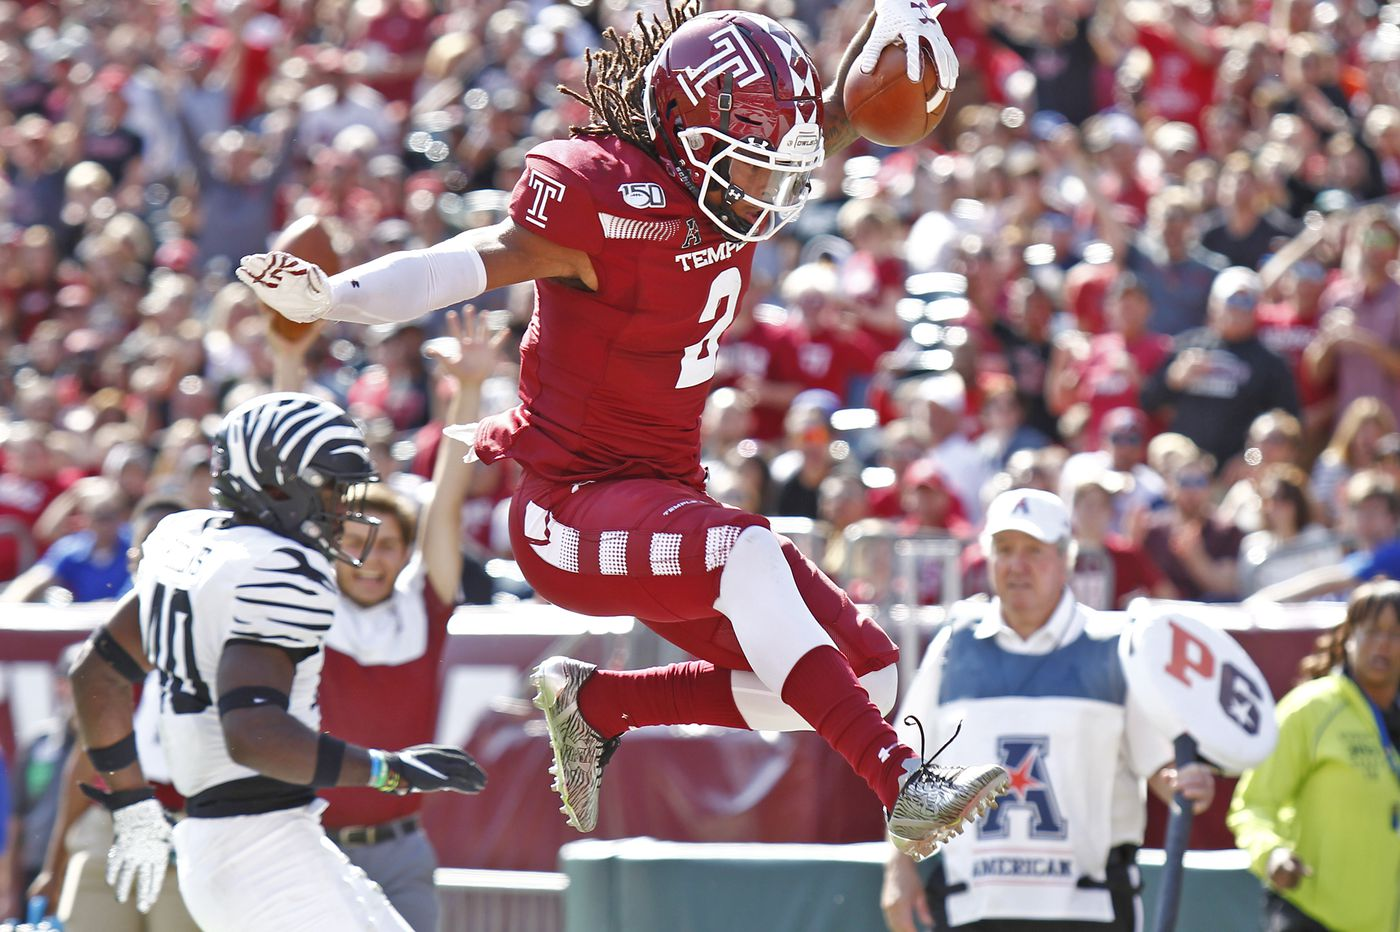 Overturned call is key in Temple's 30-28 win over No. 23 Memphis